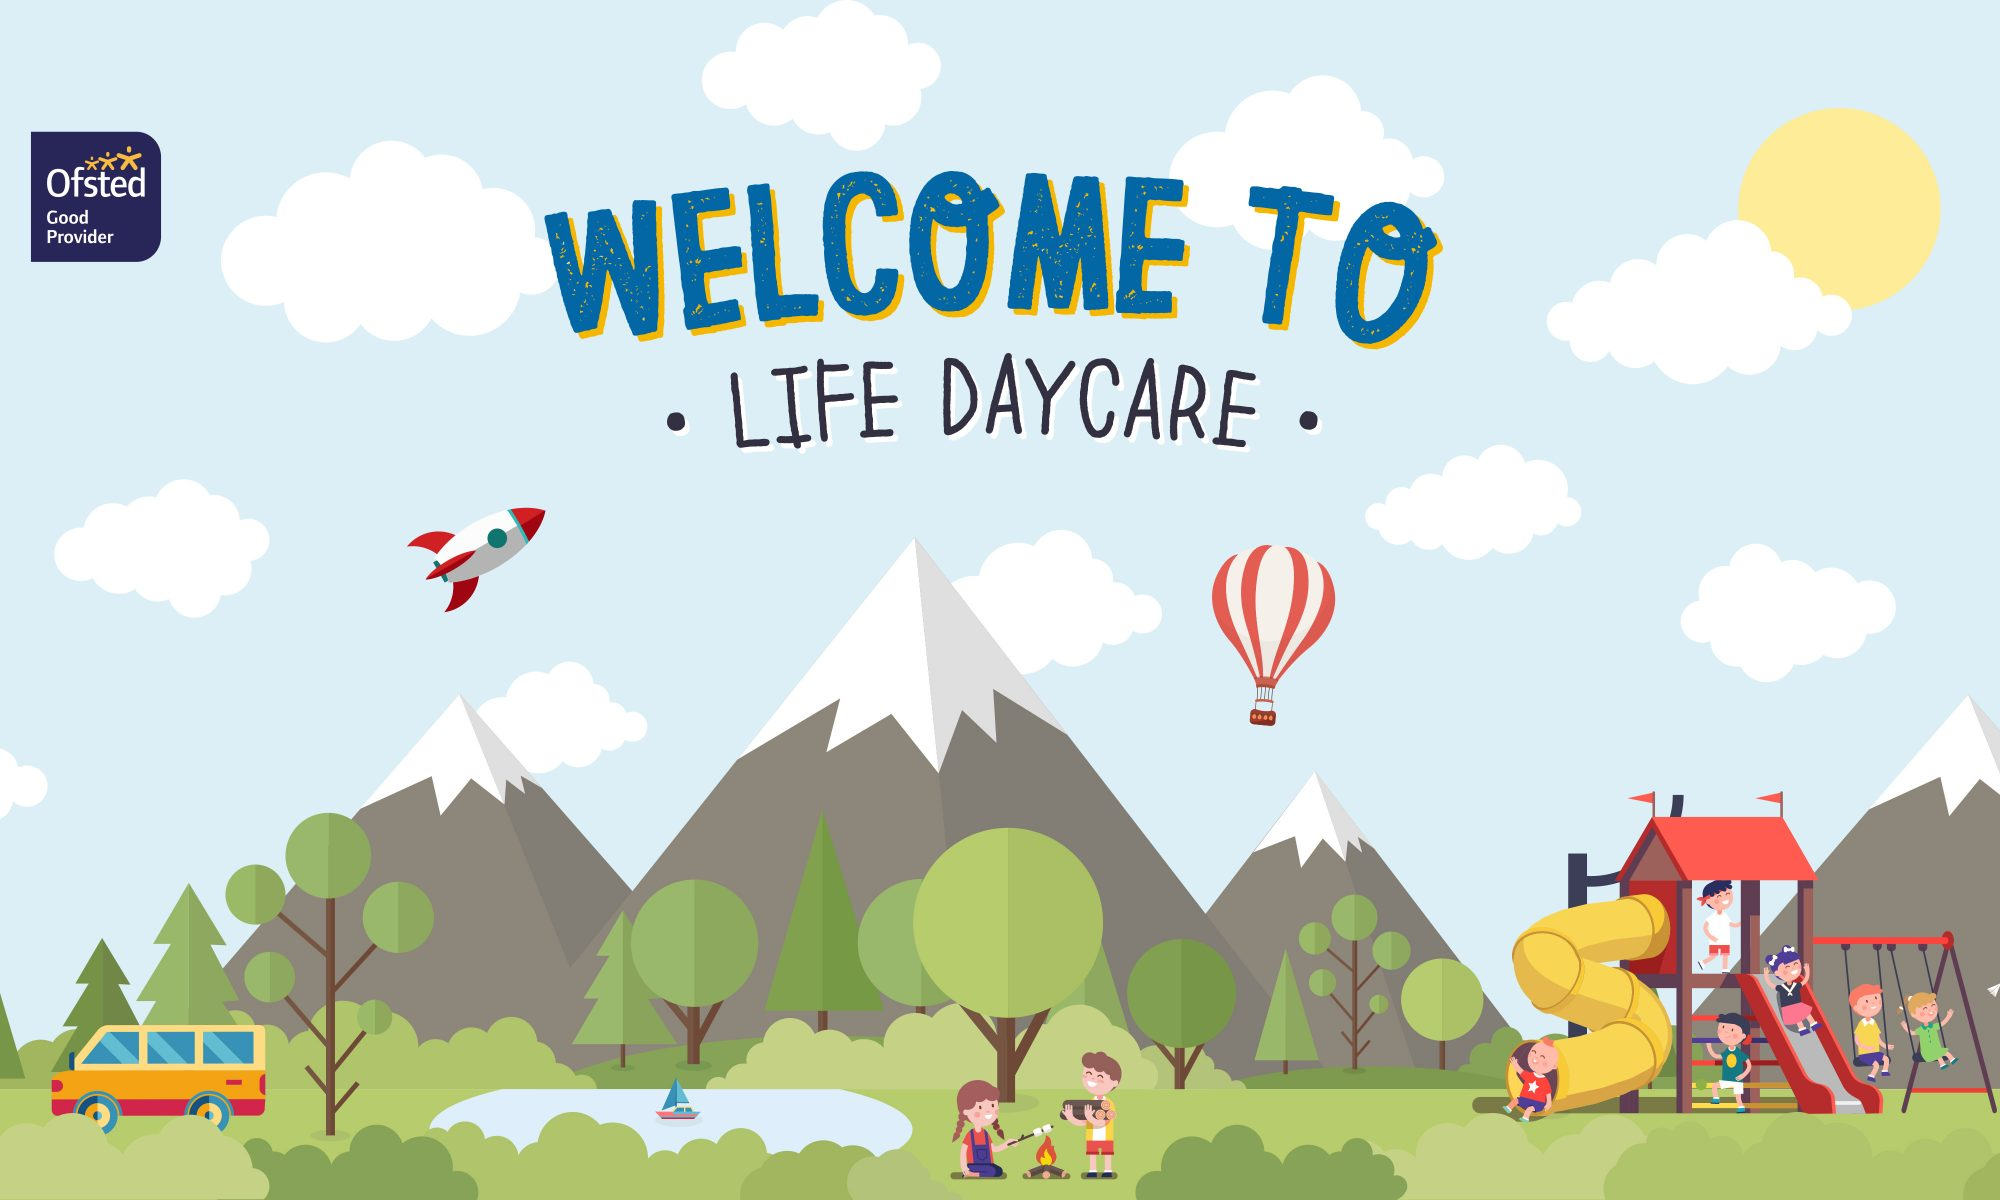 LIFE Daycare